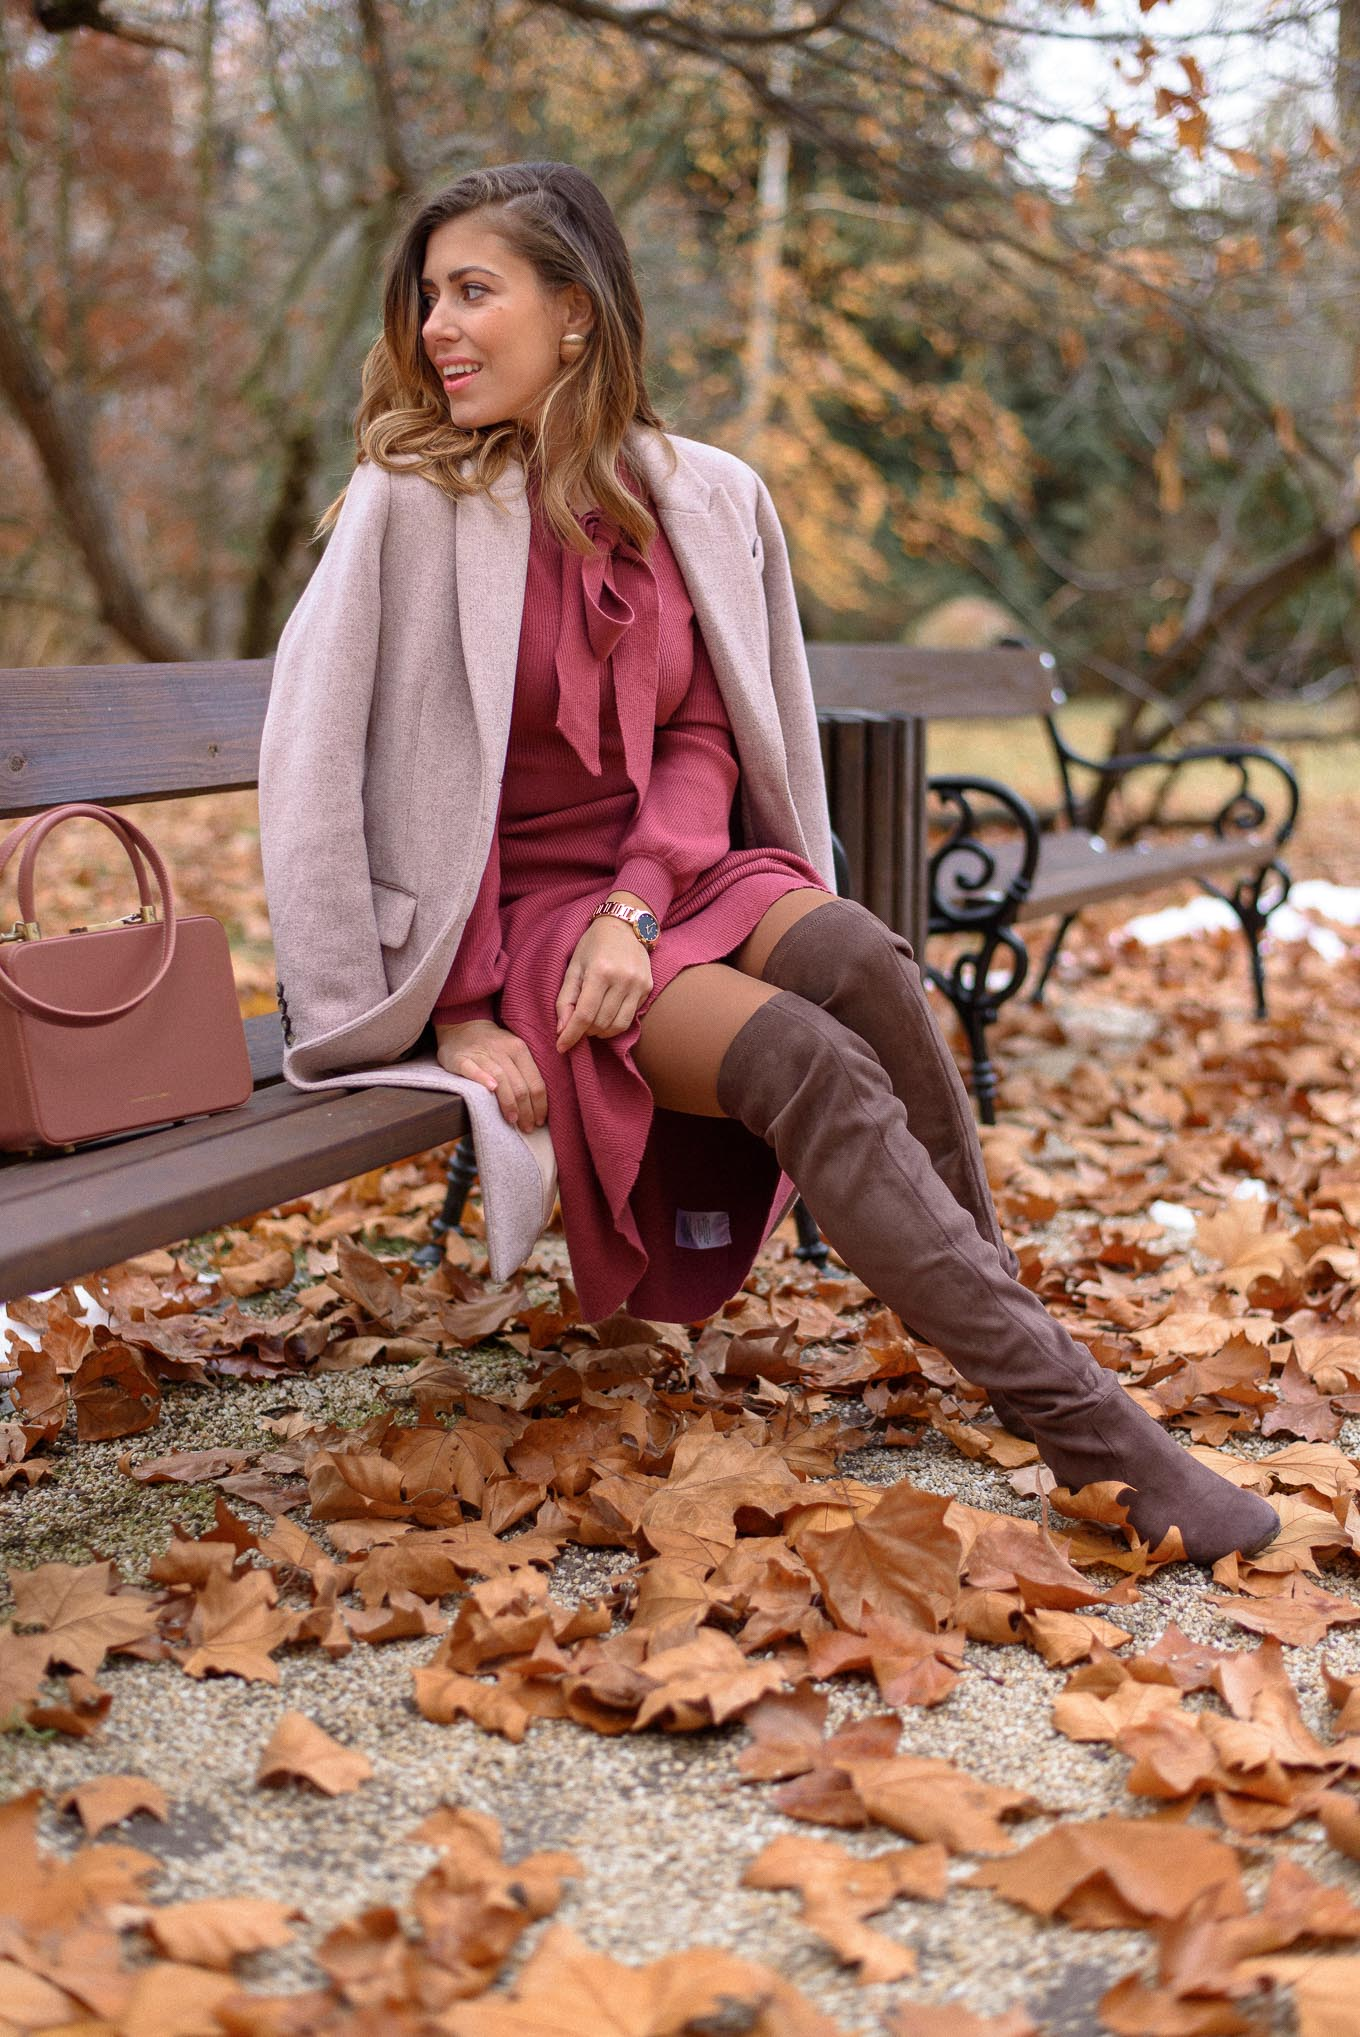 Wearing tosca blu boots